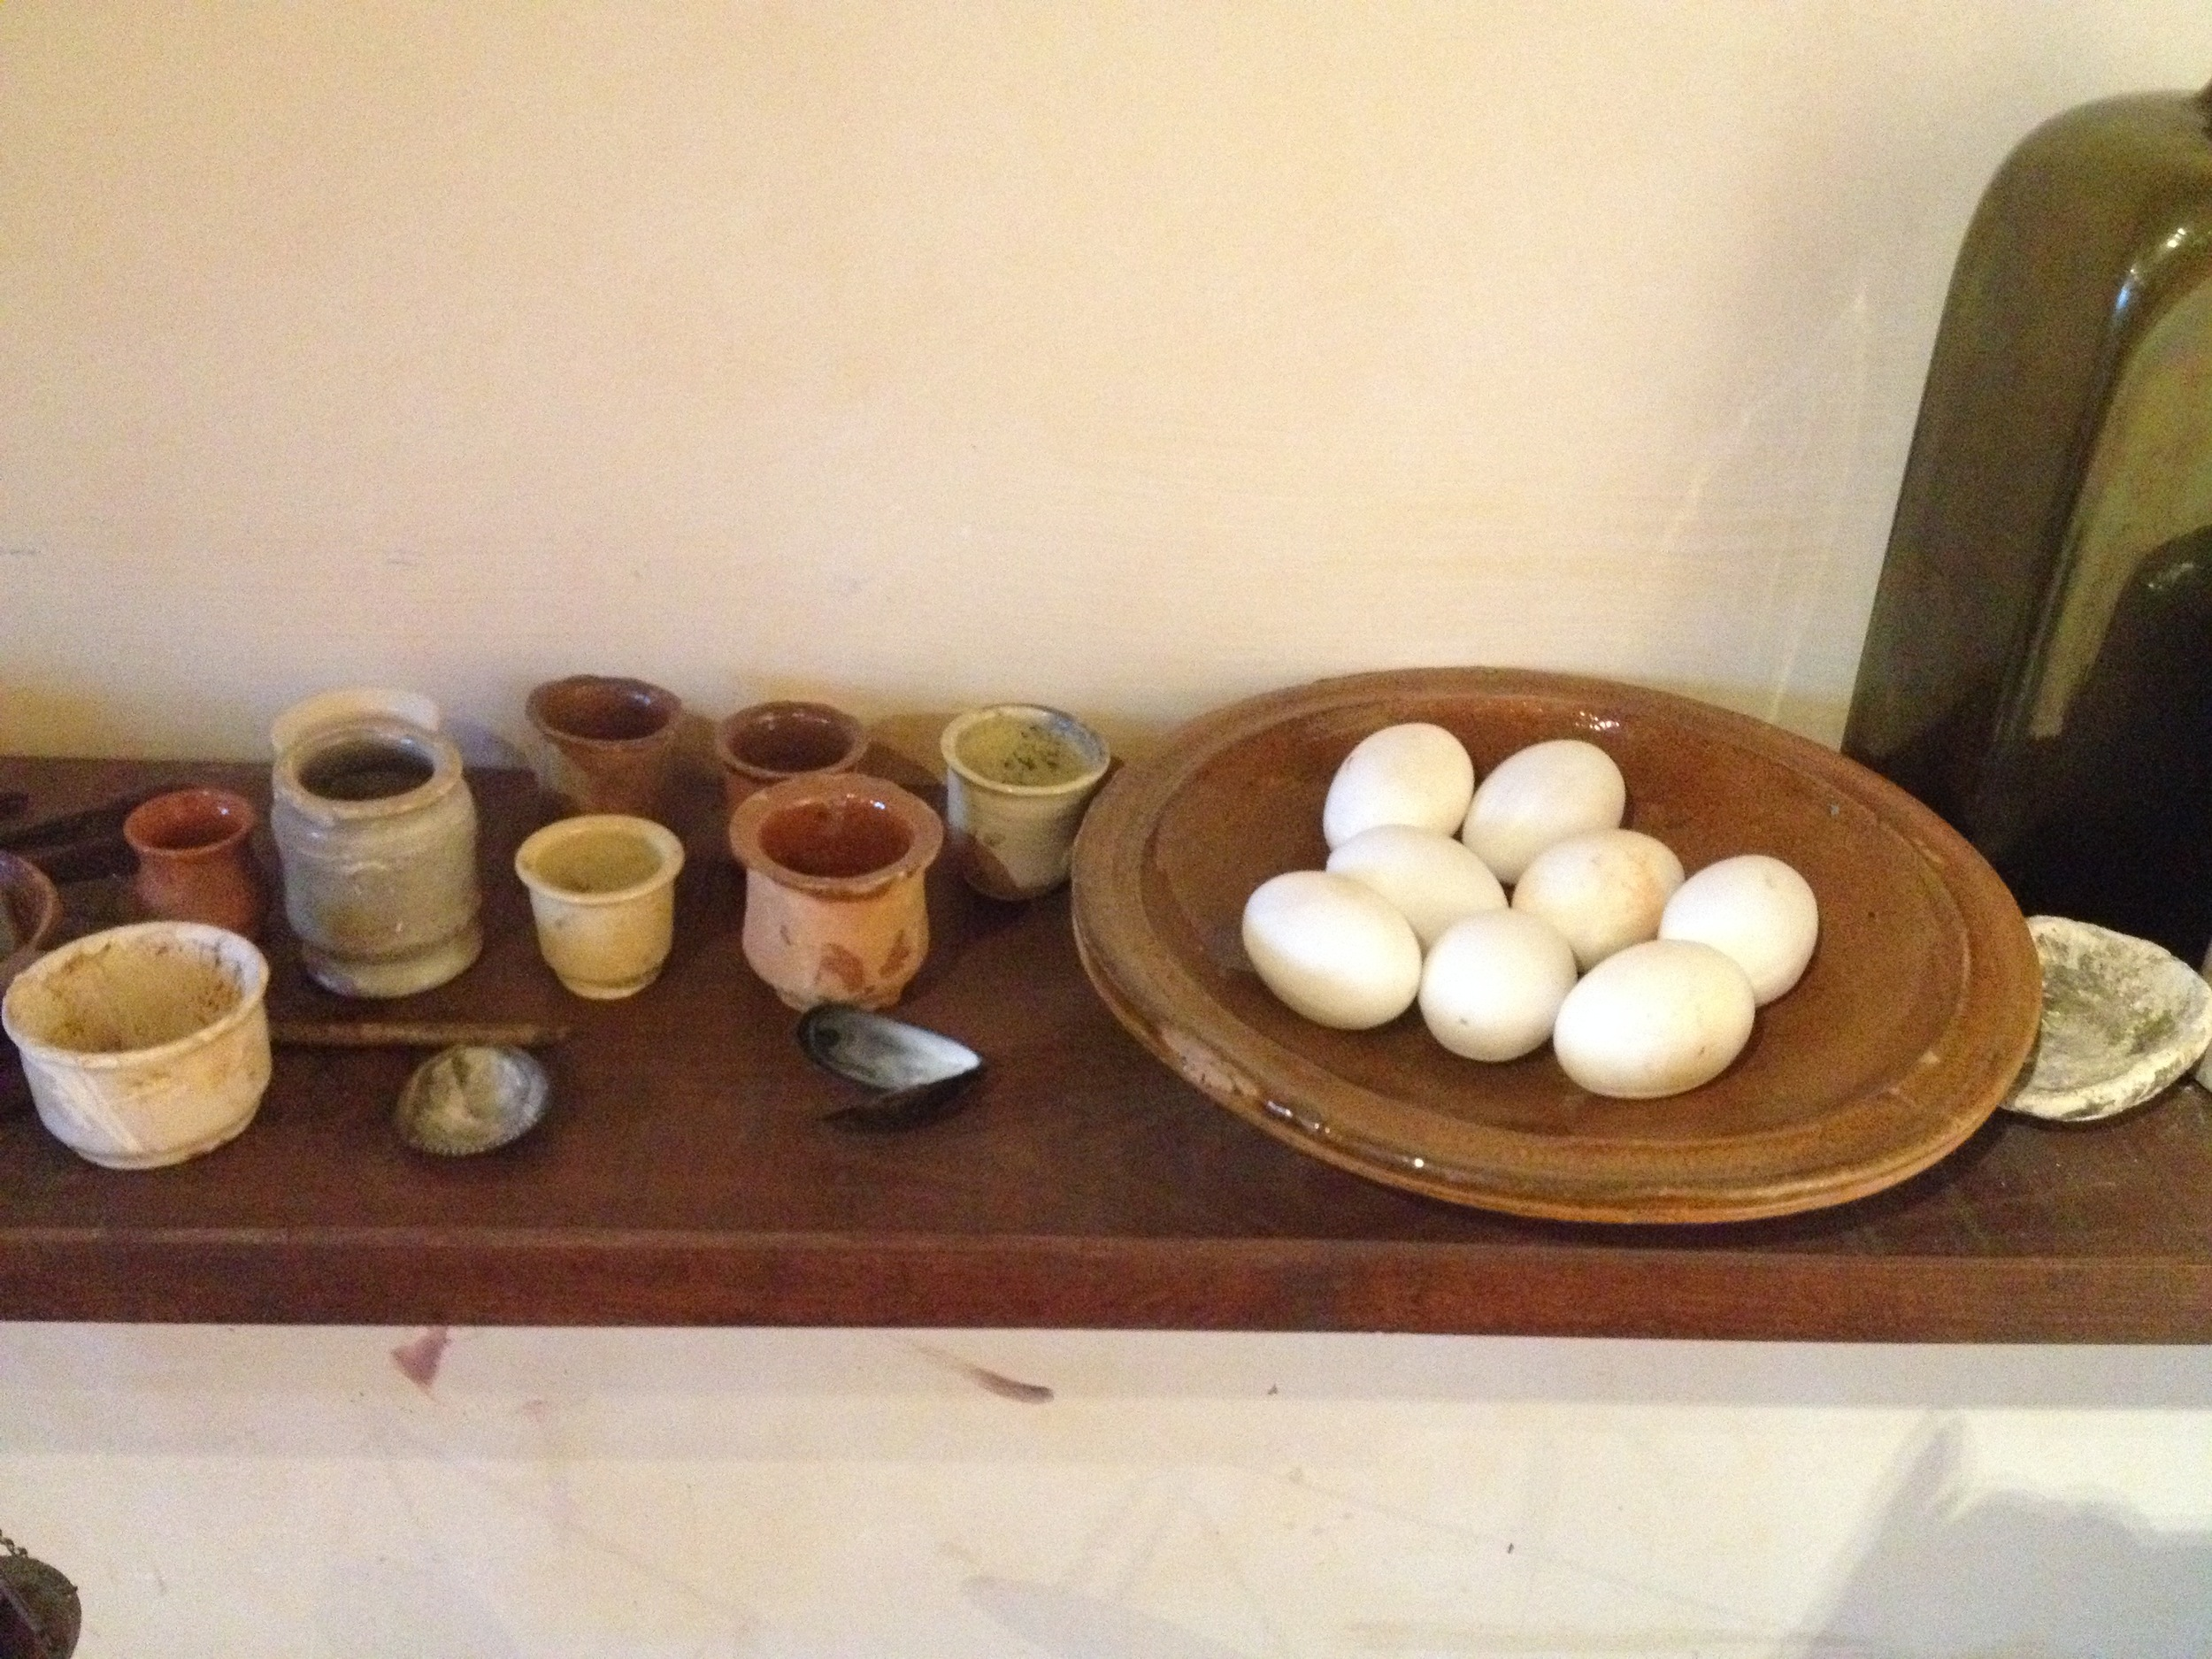 THE ALABASTER EGGS REMBRANDT PUT OUT FOR MY VISIT